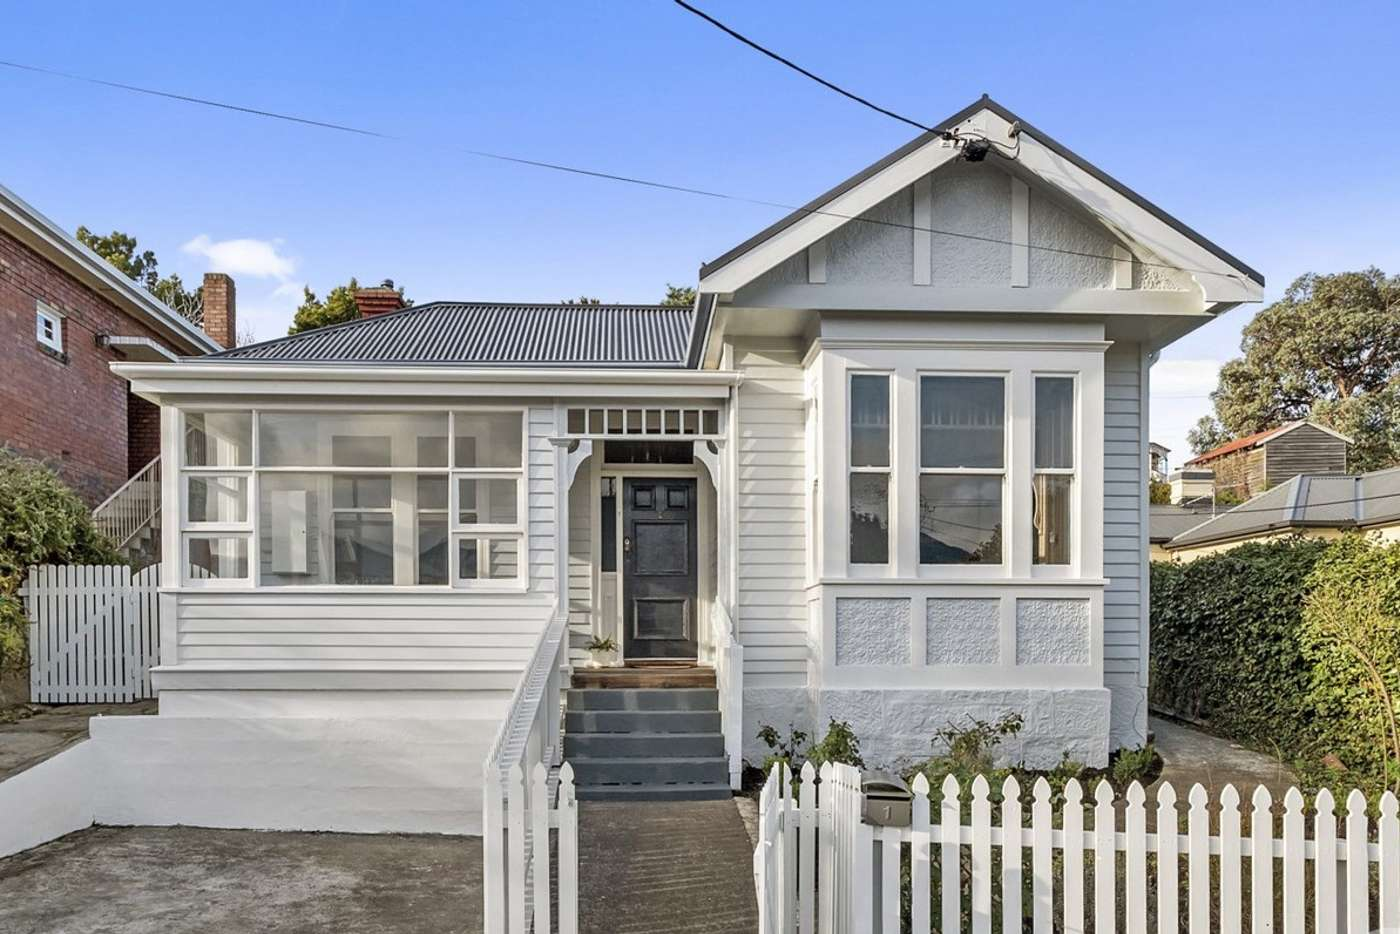 Main view of Homely house listing, 1 Pirie Street, New Town TAS 7008